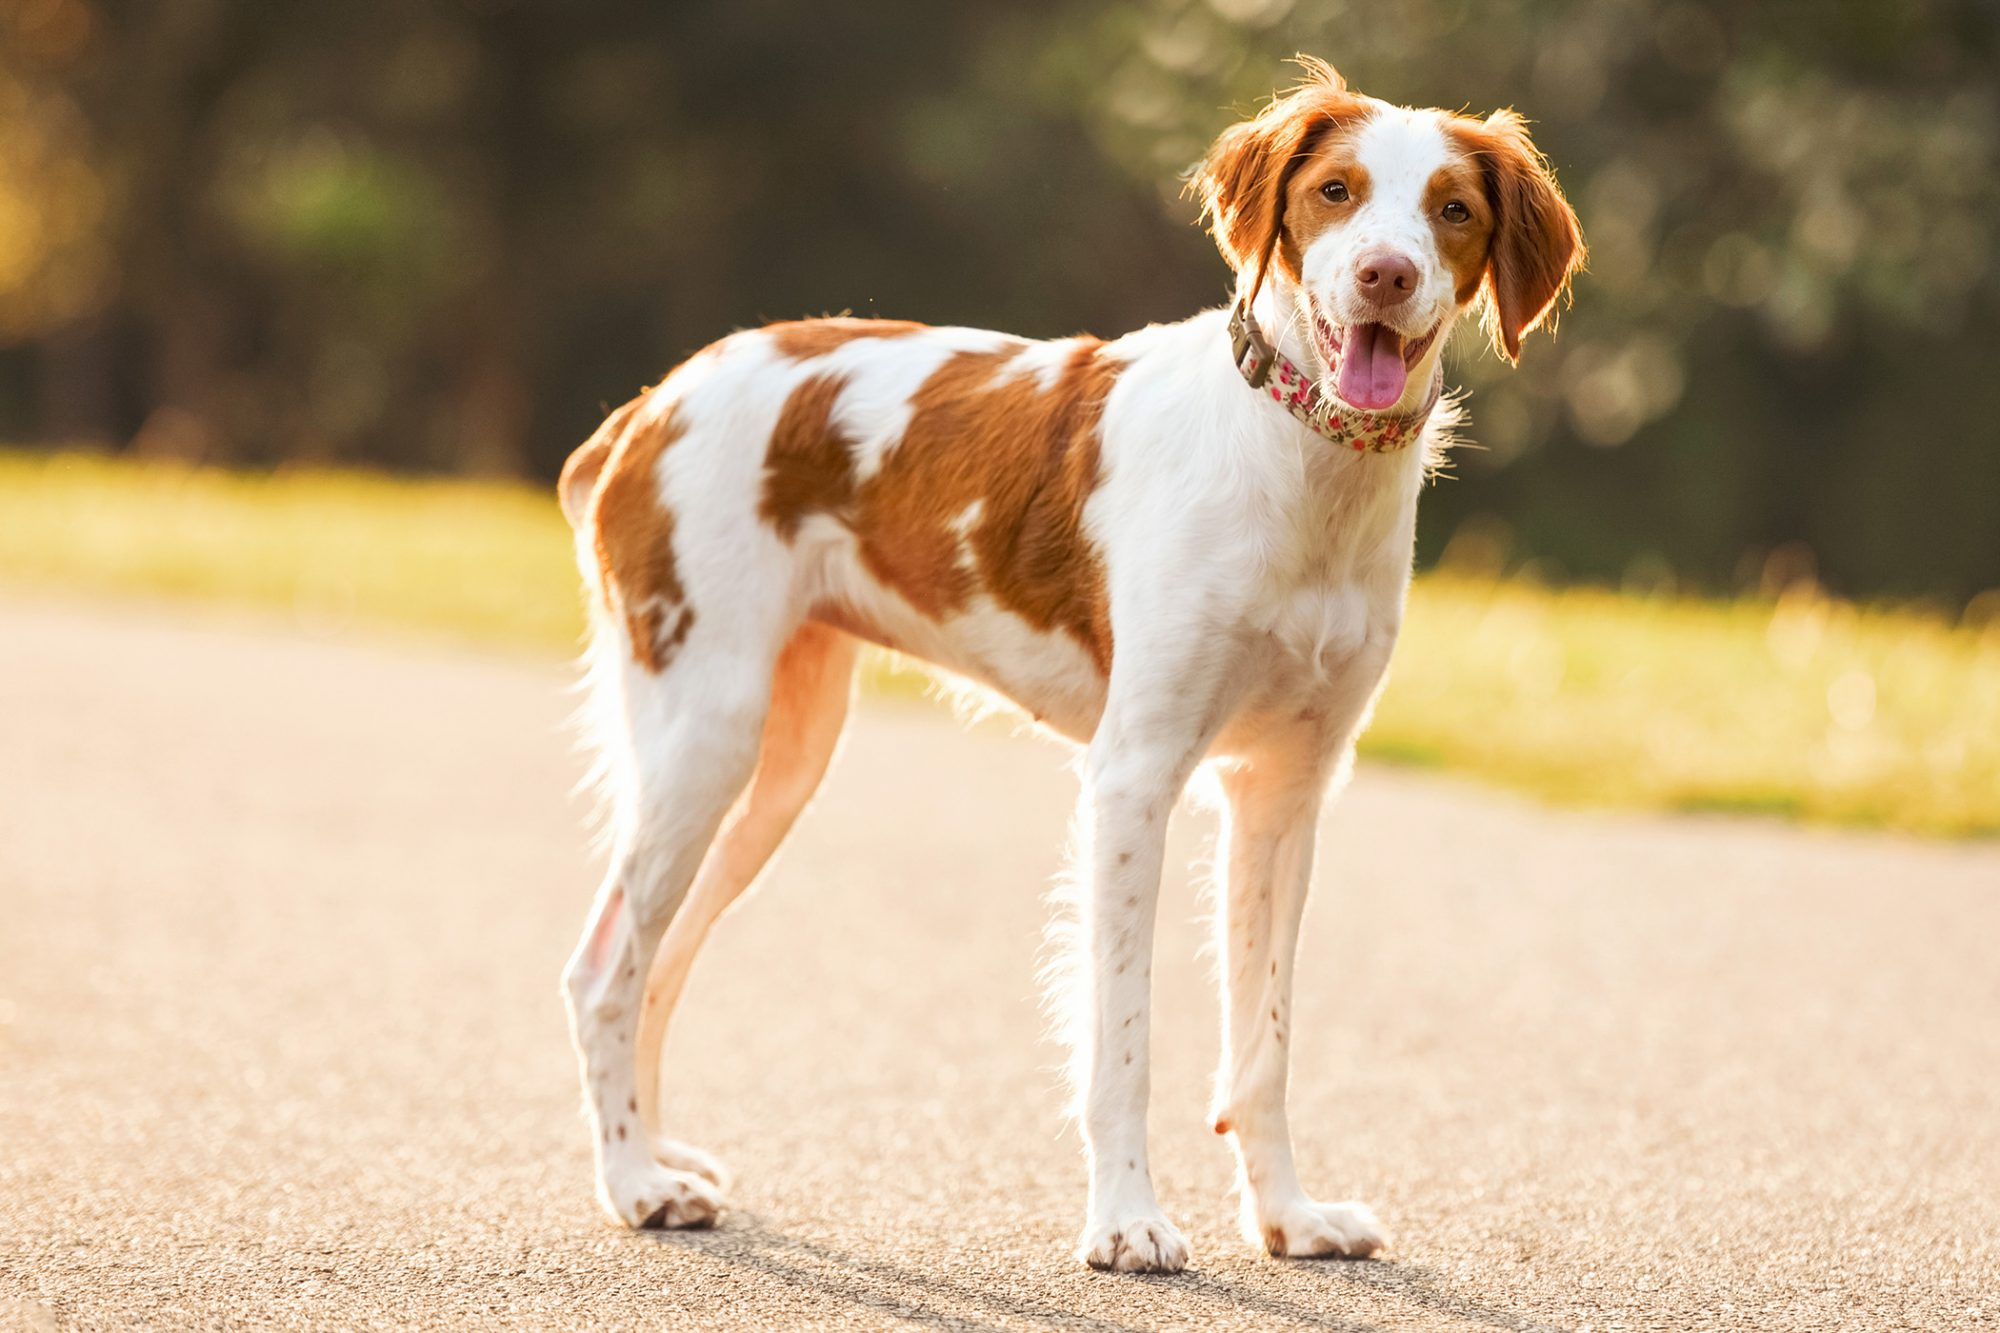 Brittany spaniel stands in middle of road